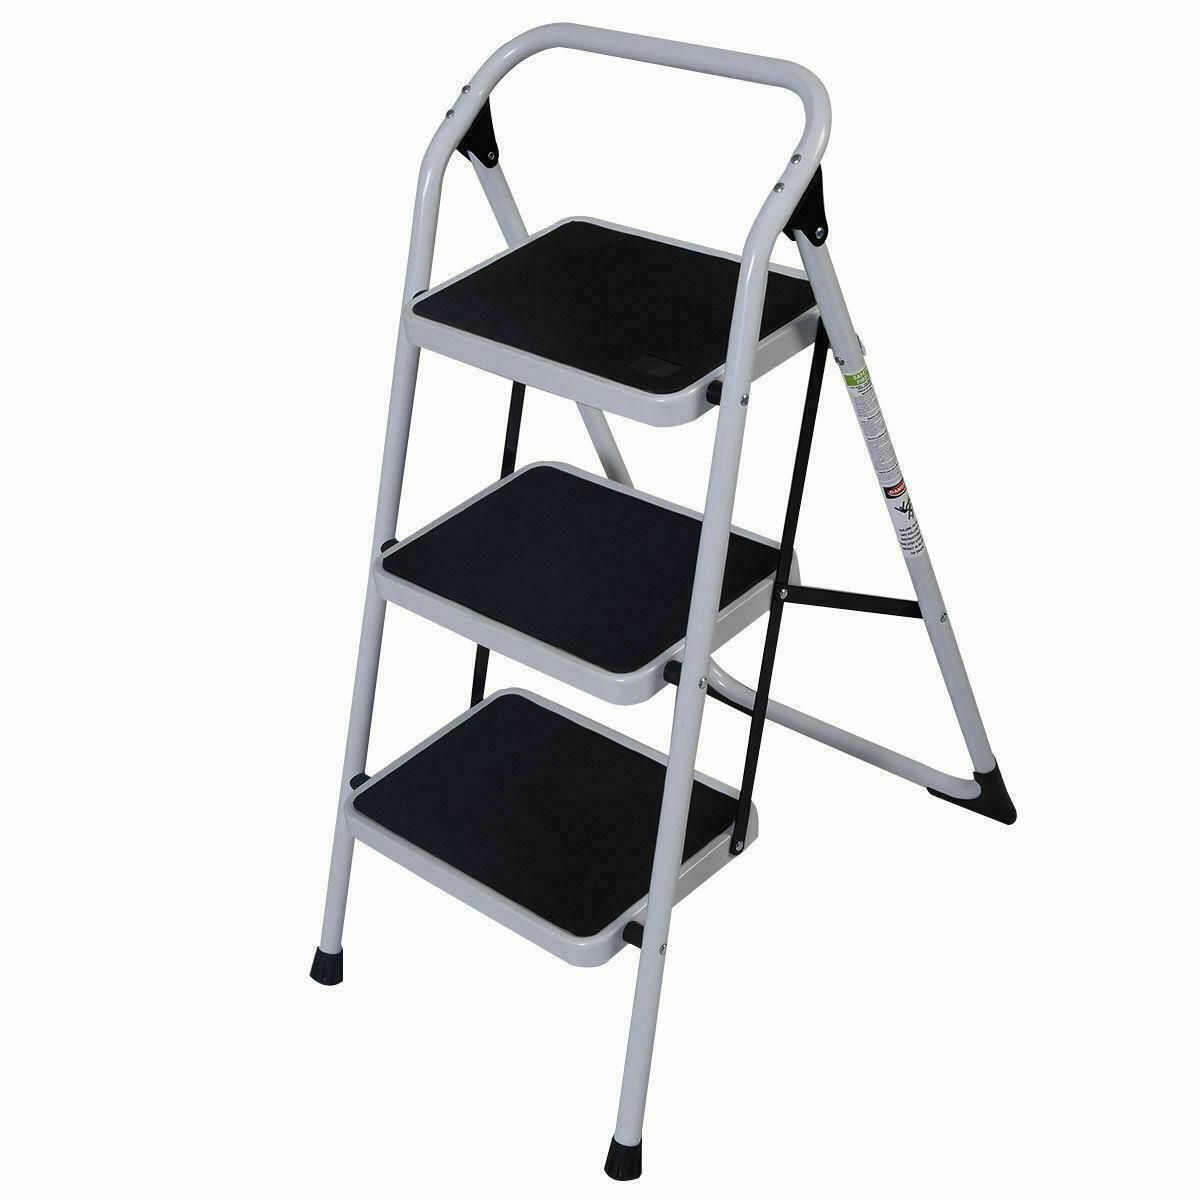 52fa27538d0d29532bd45db998d0224c - Step Ladder 3 Step Folding Non-slip - work-from-home